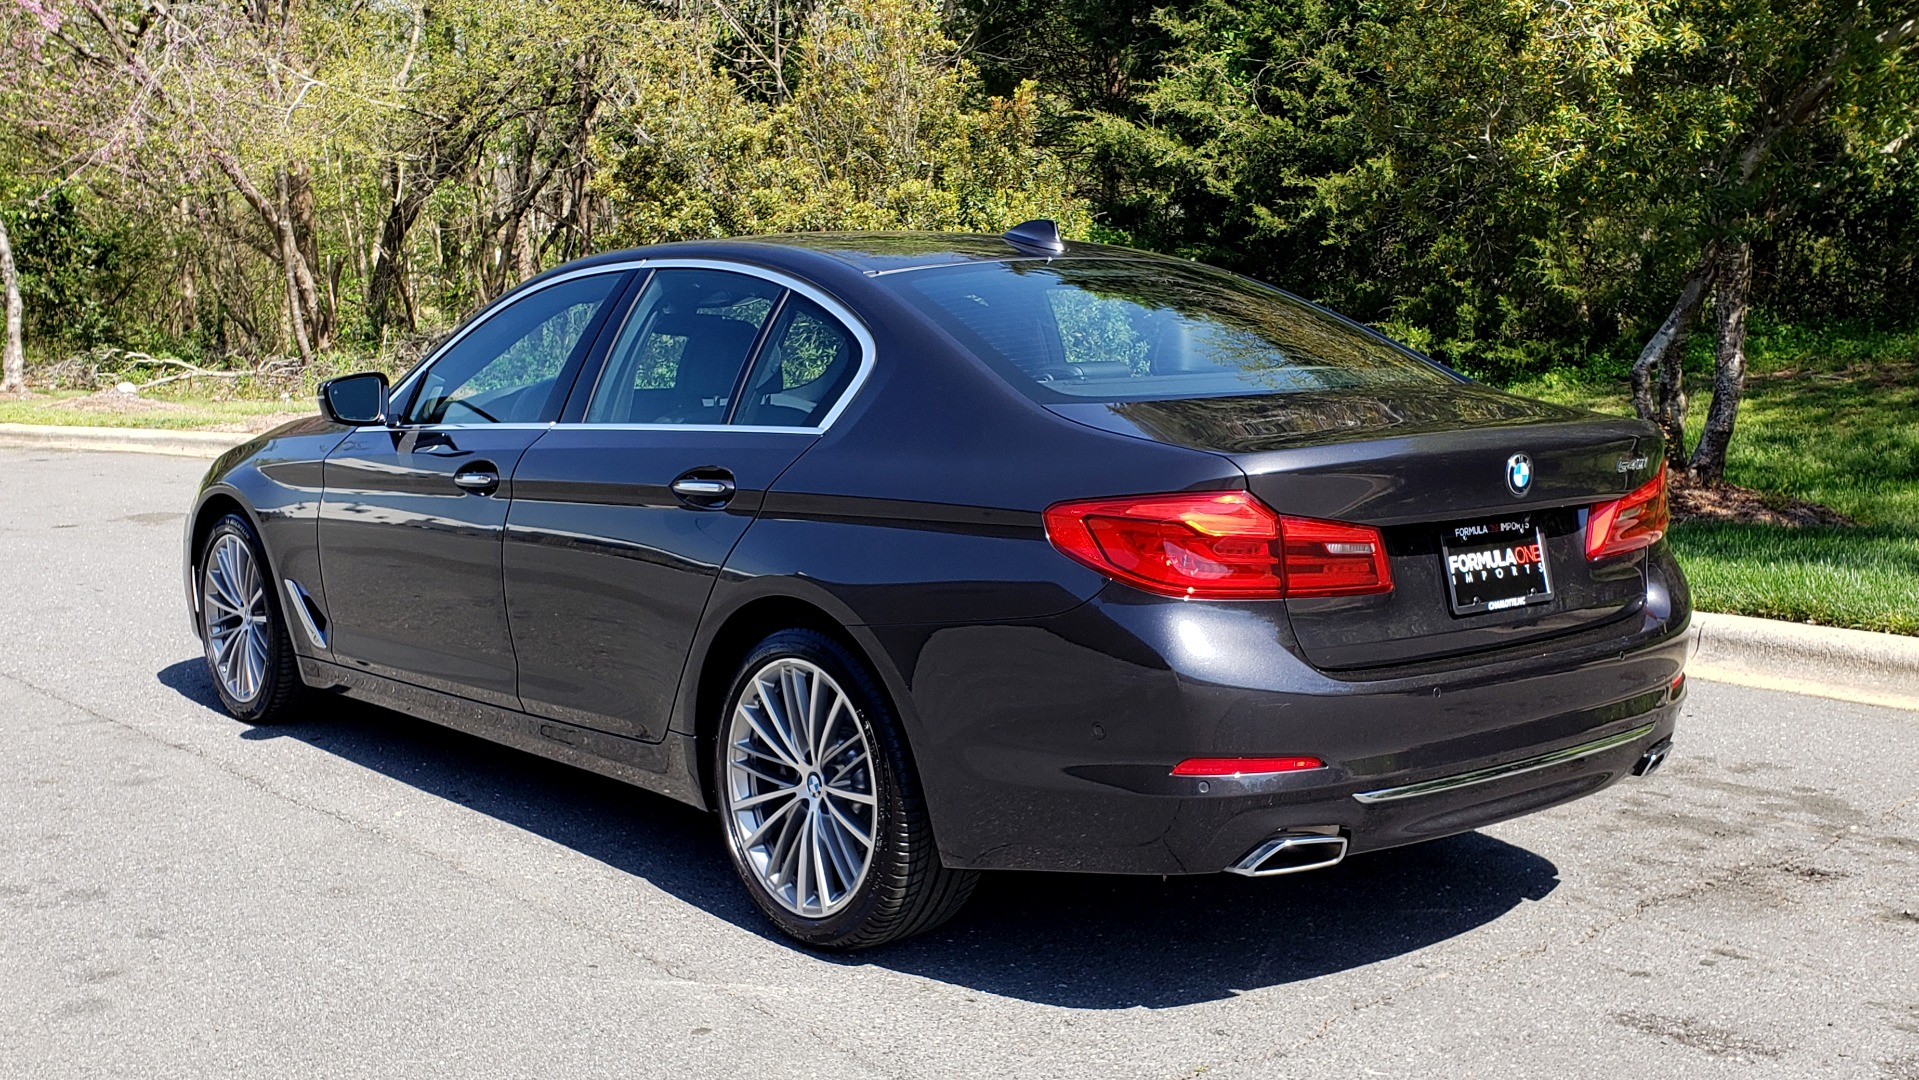 Used 2017 BMW 5 SERIES 540I PREMIUM / DRVR ASST PLUS / NAV / SNF / HARMAN/KARDON for sale Sold at Formula Imports in Charlotte NC 28227 3